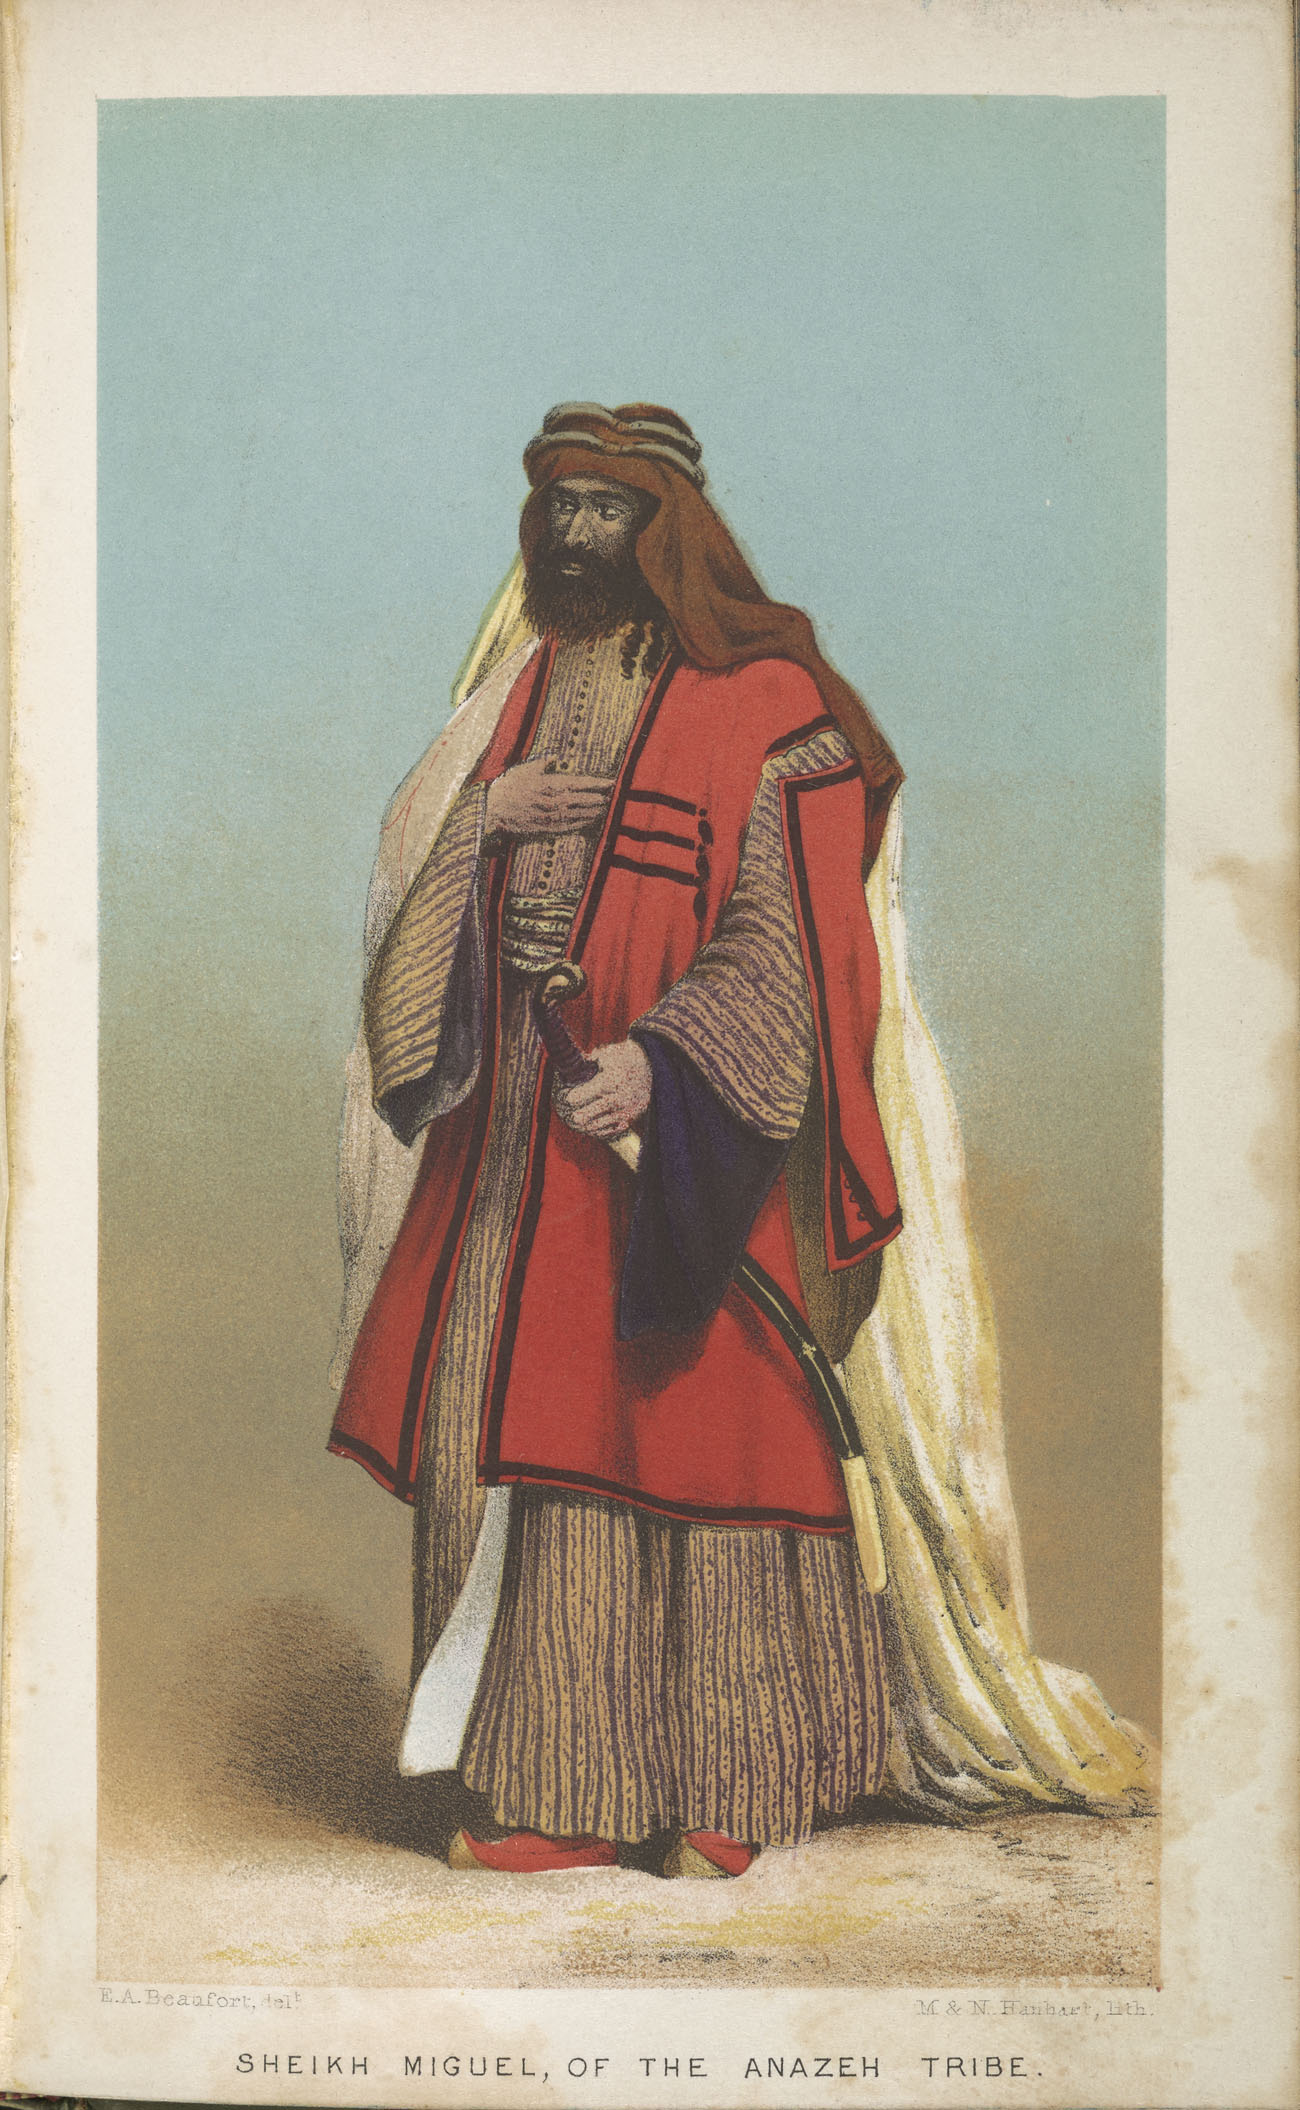 Sheik Miguel, of the Anazeh Tribe